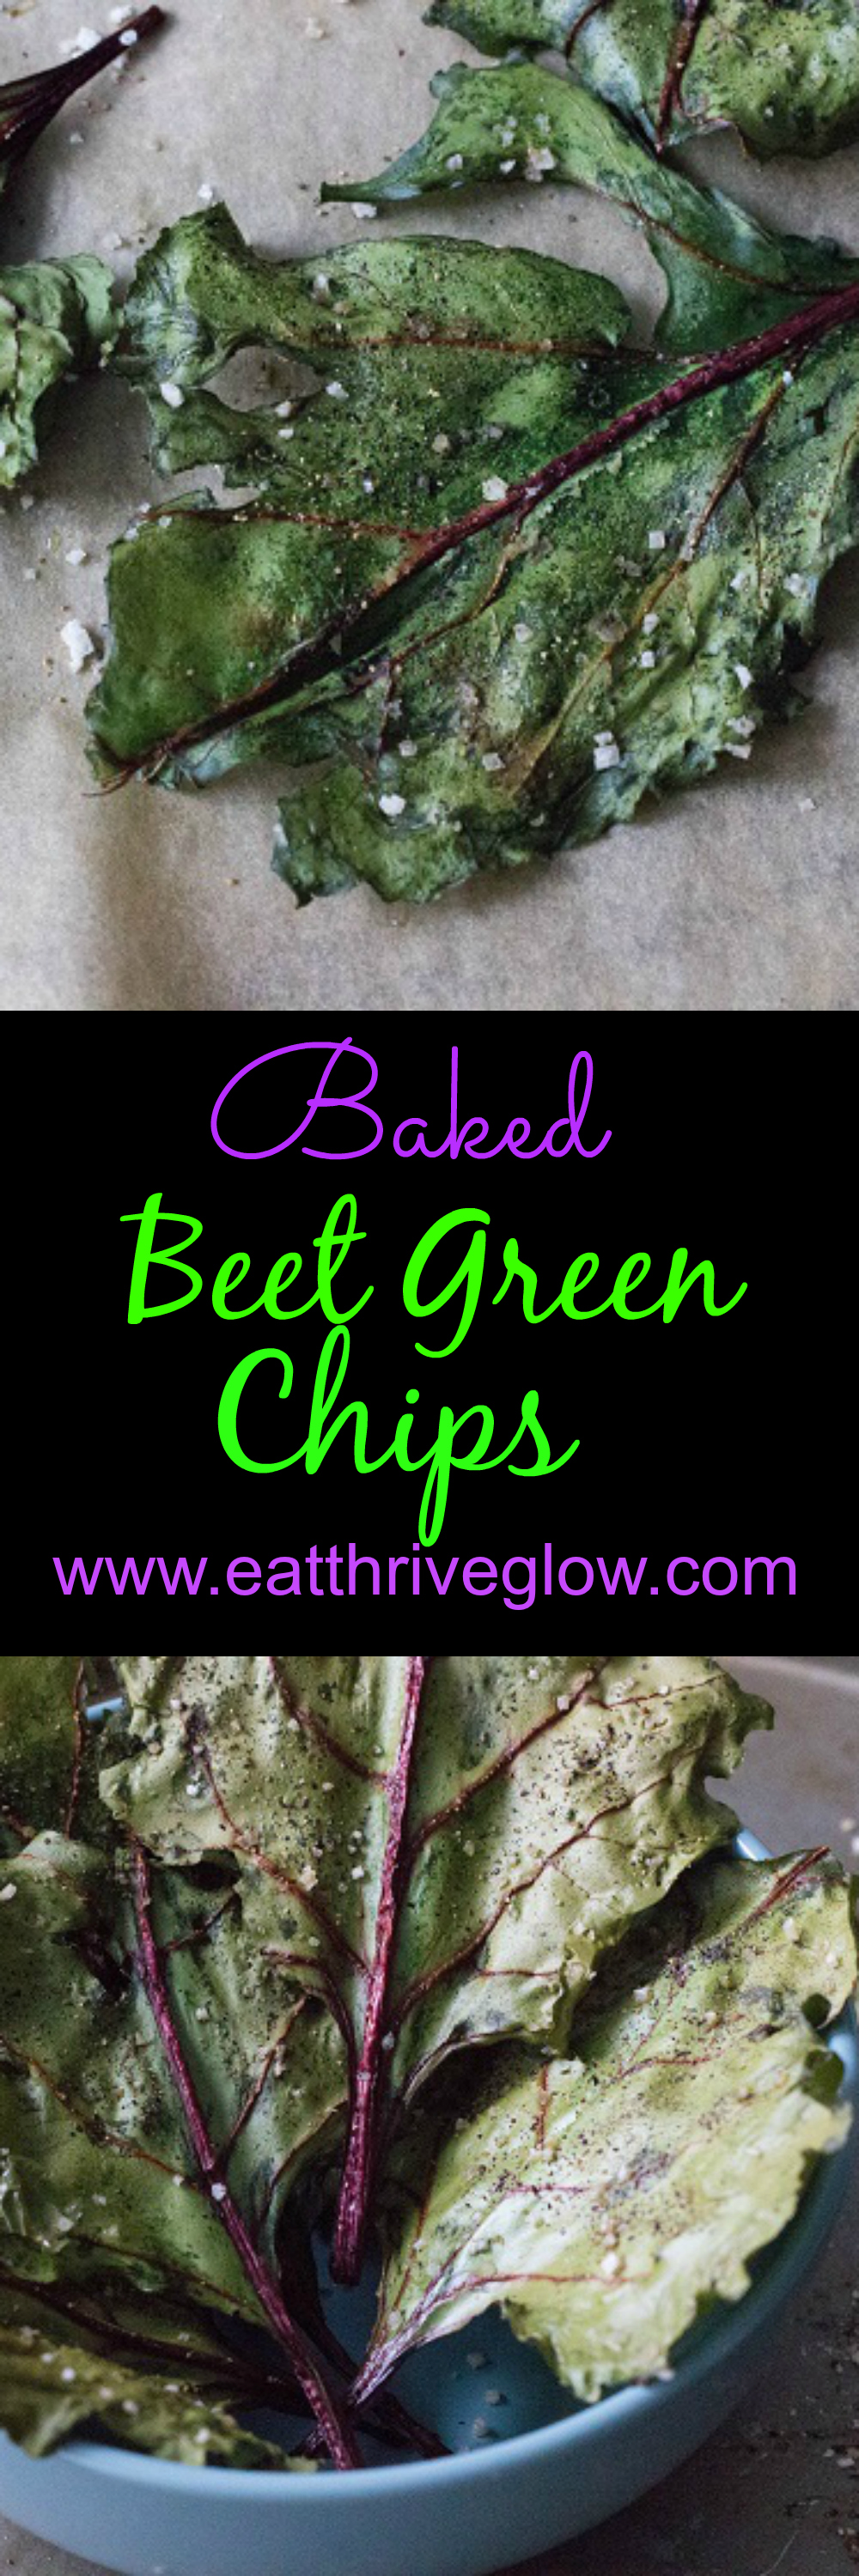 Baked Beet Green Chips - Eat Thrive Glow